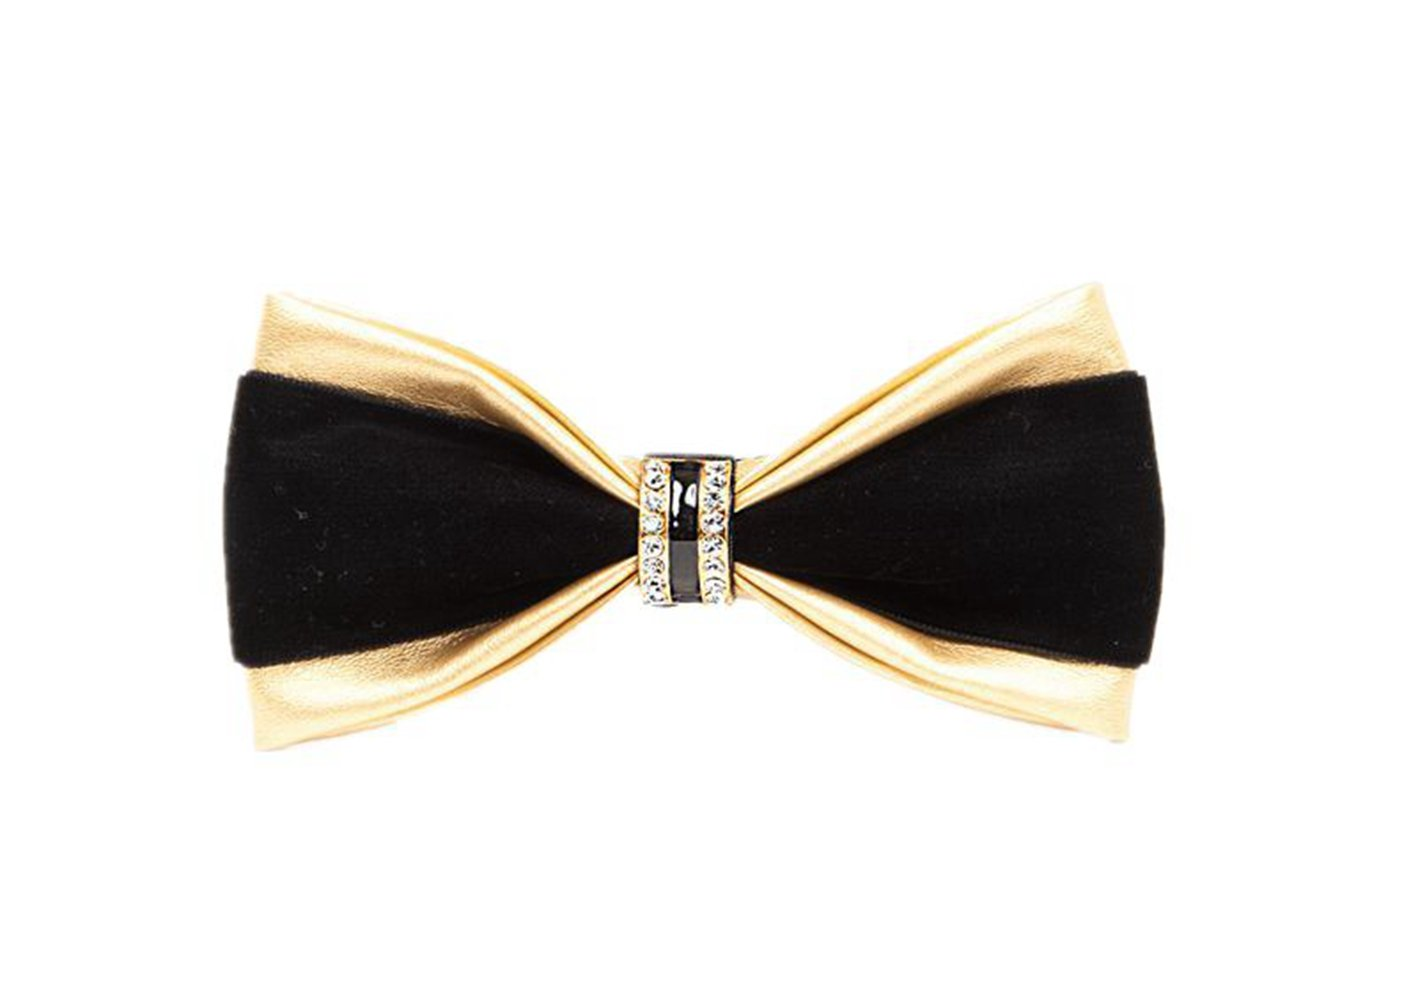 Hello Tie Men's Pre-tied Double Color PU Leather Luxury Bow Ties With Crystal Decoration-Golden